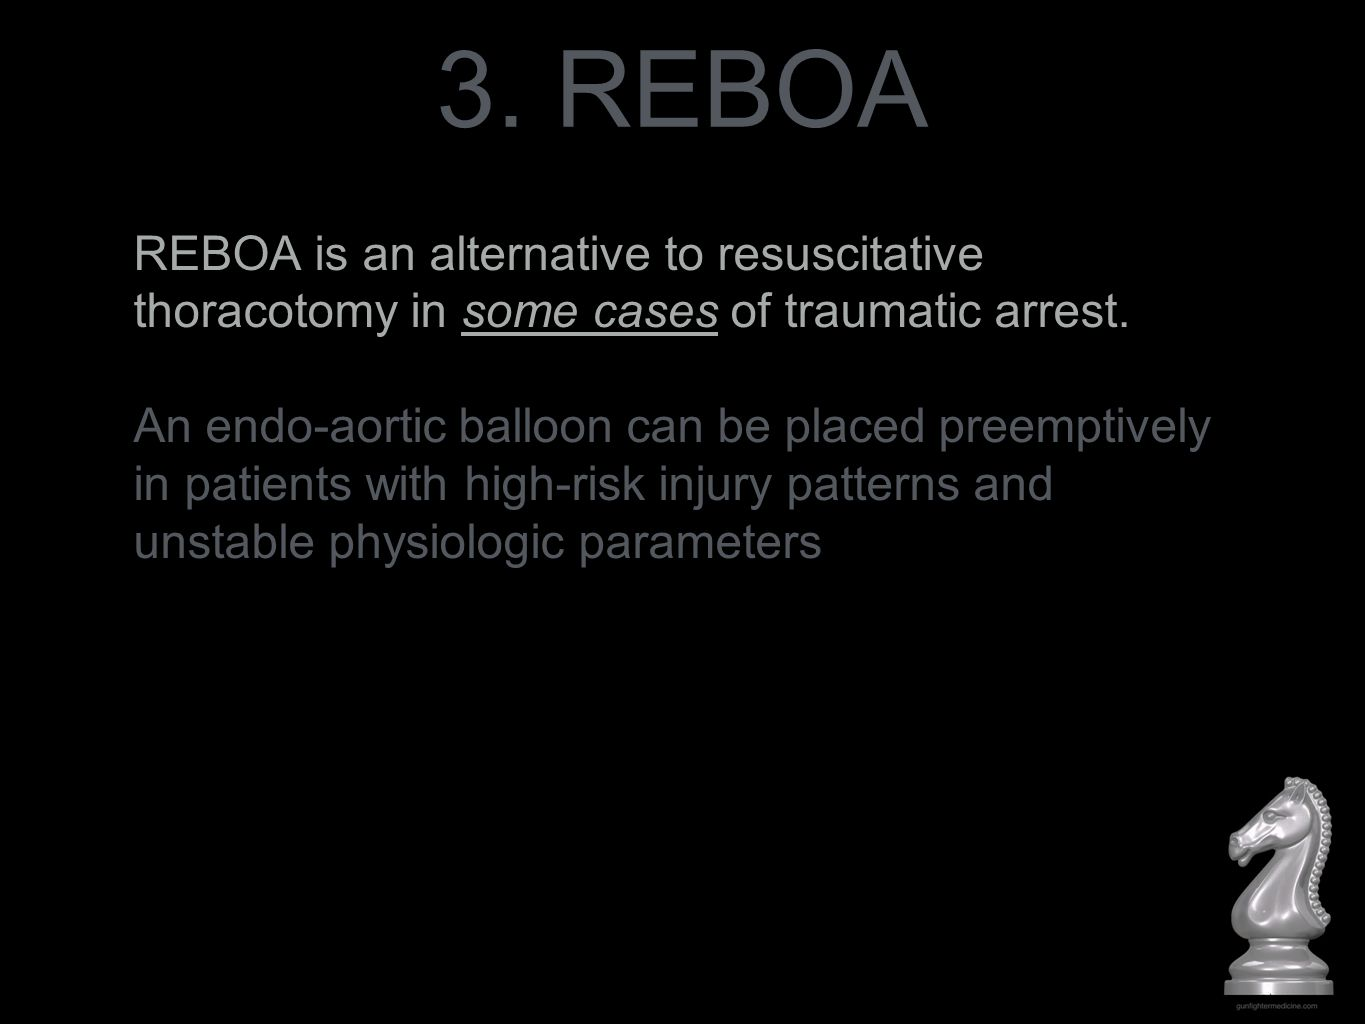 3. REBOA REBOA is an alternative to resuscitative thoracotomy in some cases of traumatic arrest.